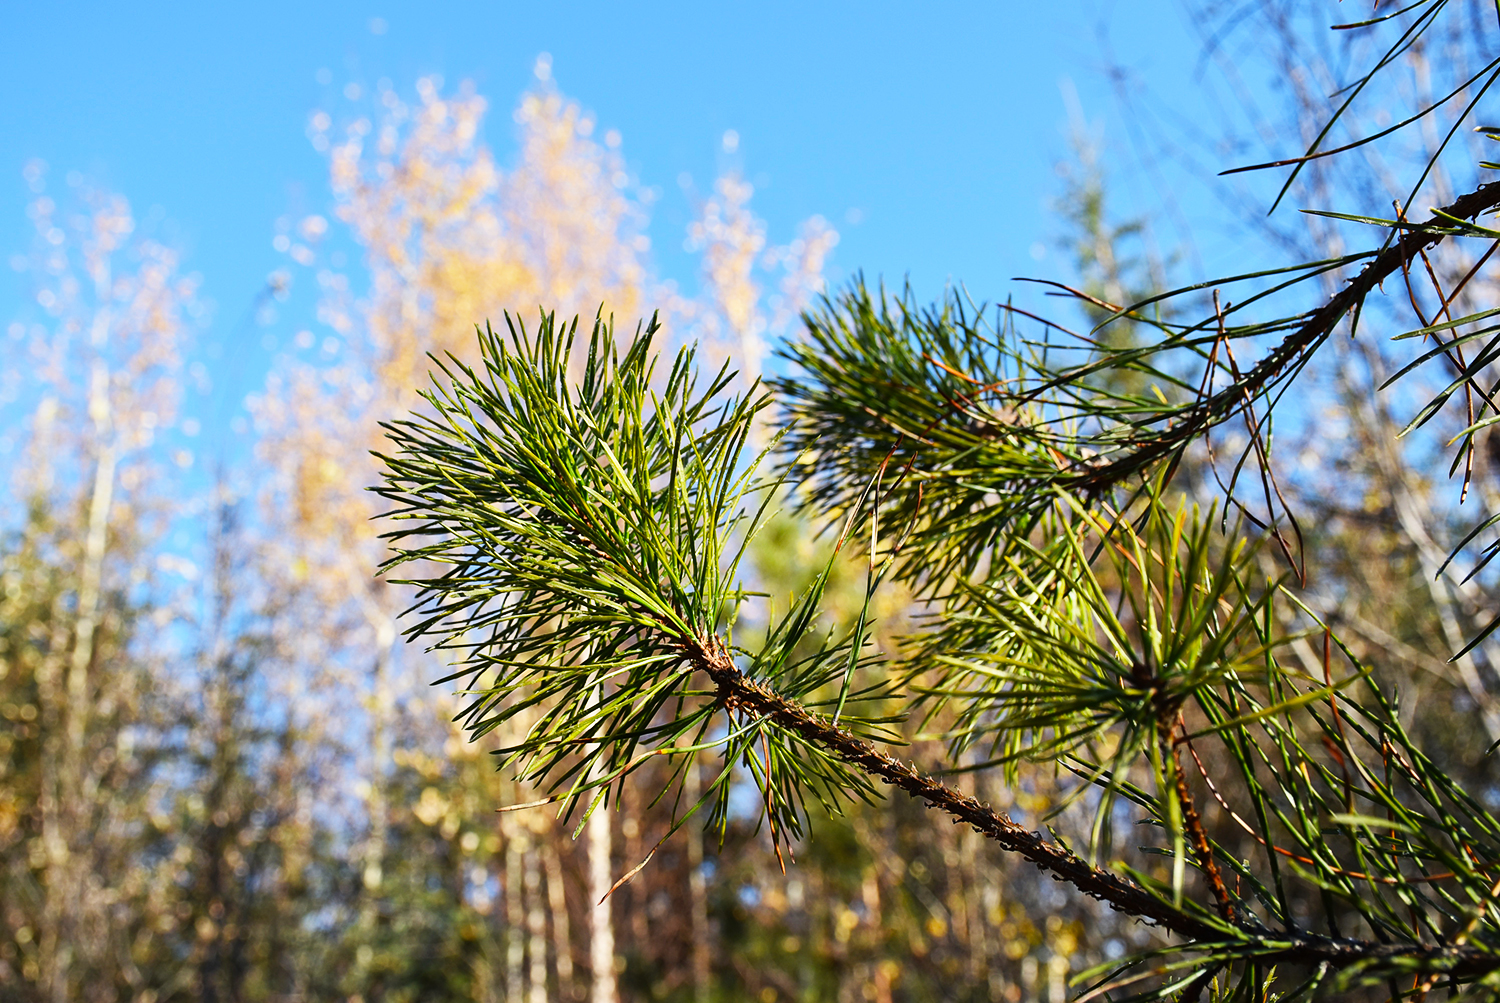 A pine branch with yellow aspens in background